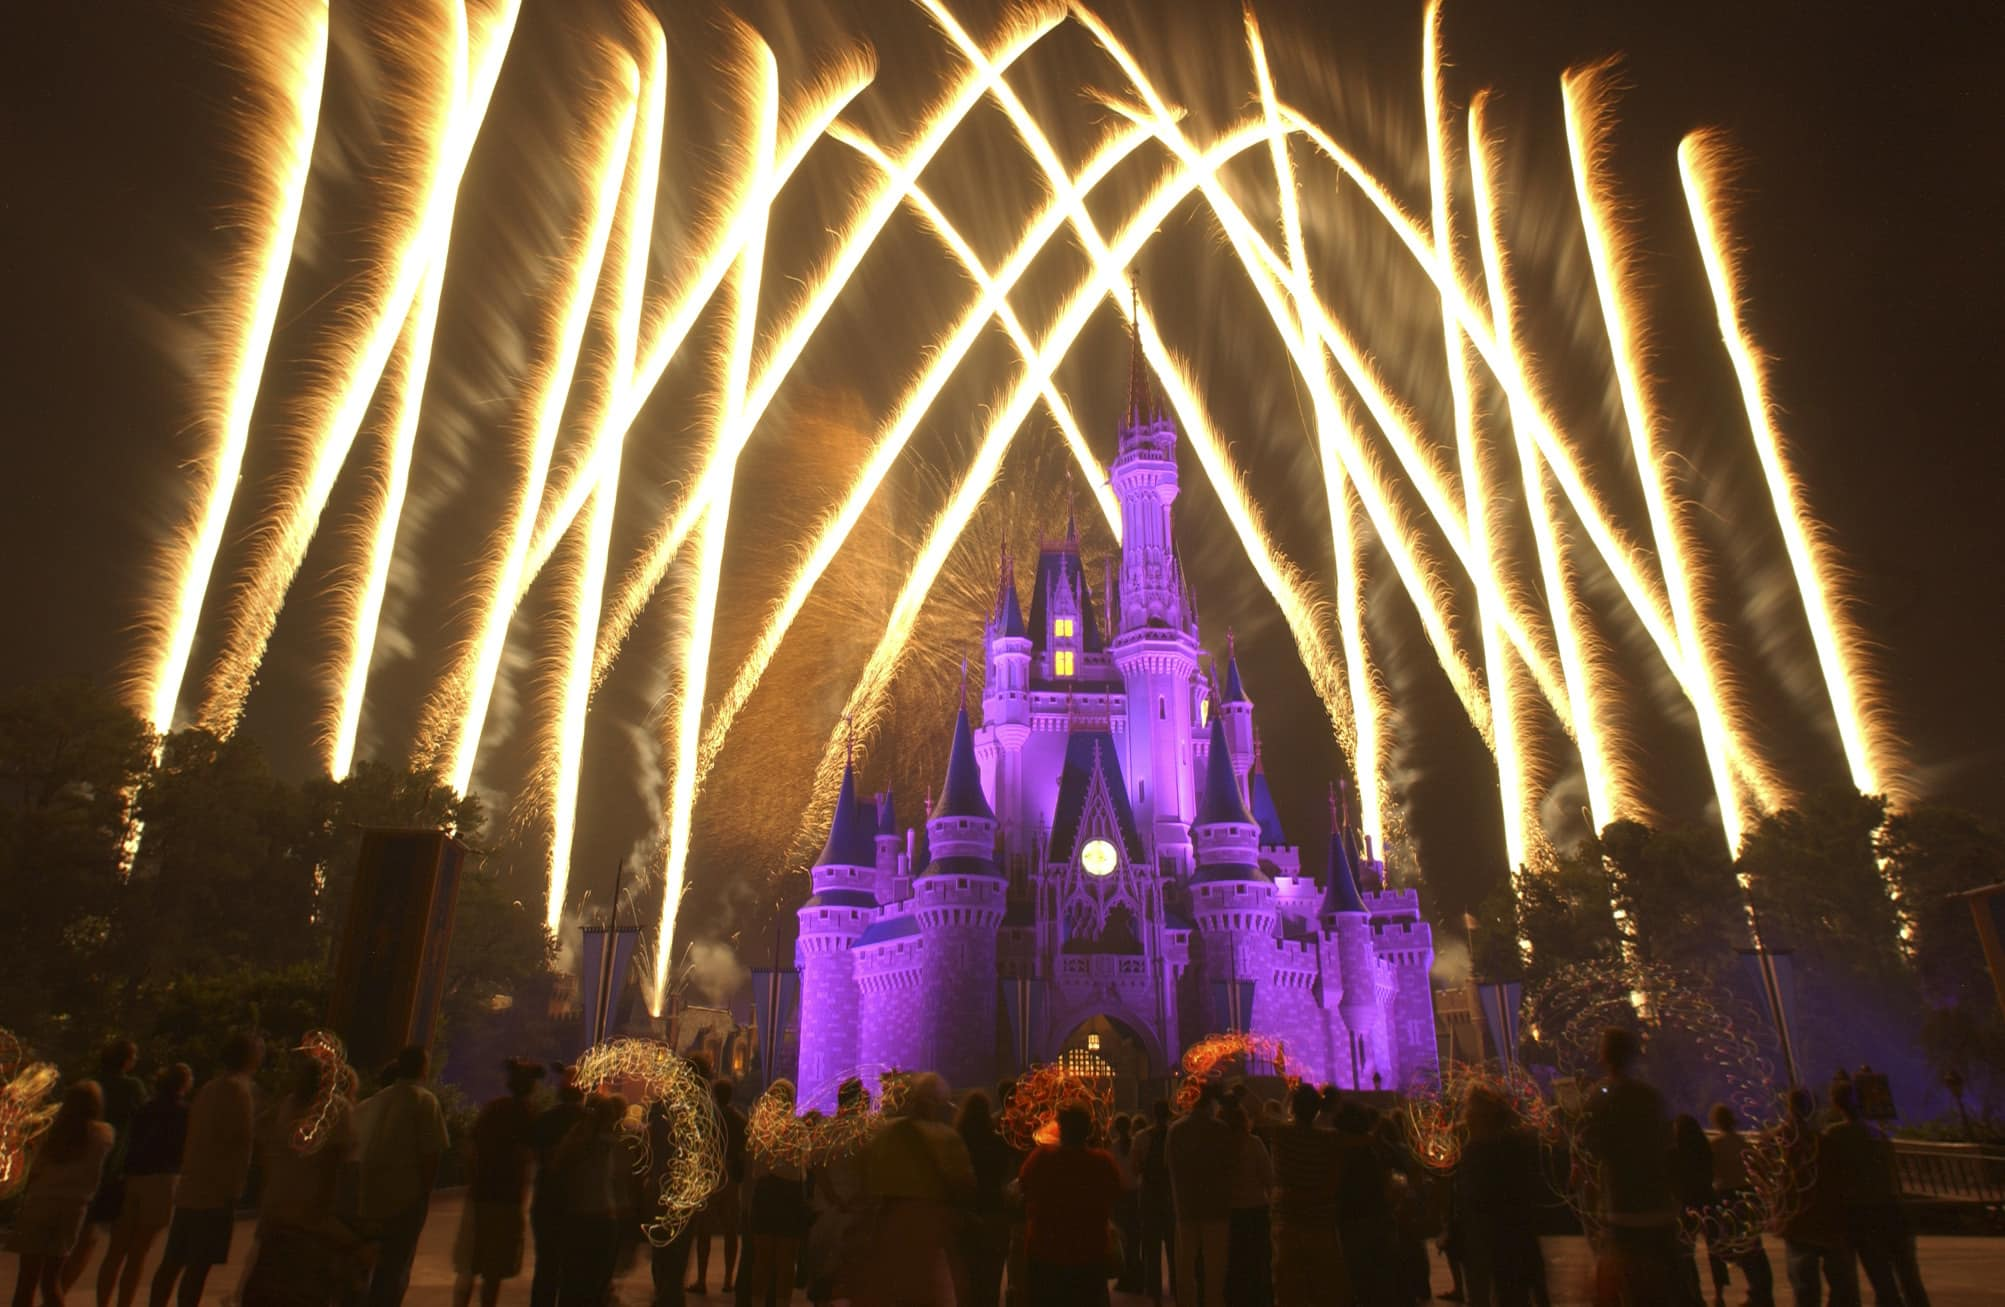 New fireworks show coming to Magic Kingdom at Walt Disney World